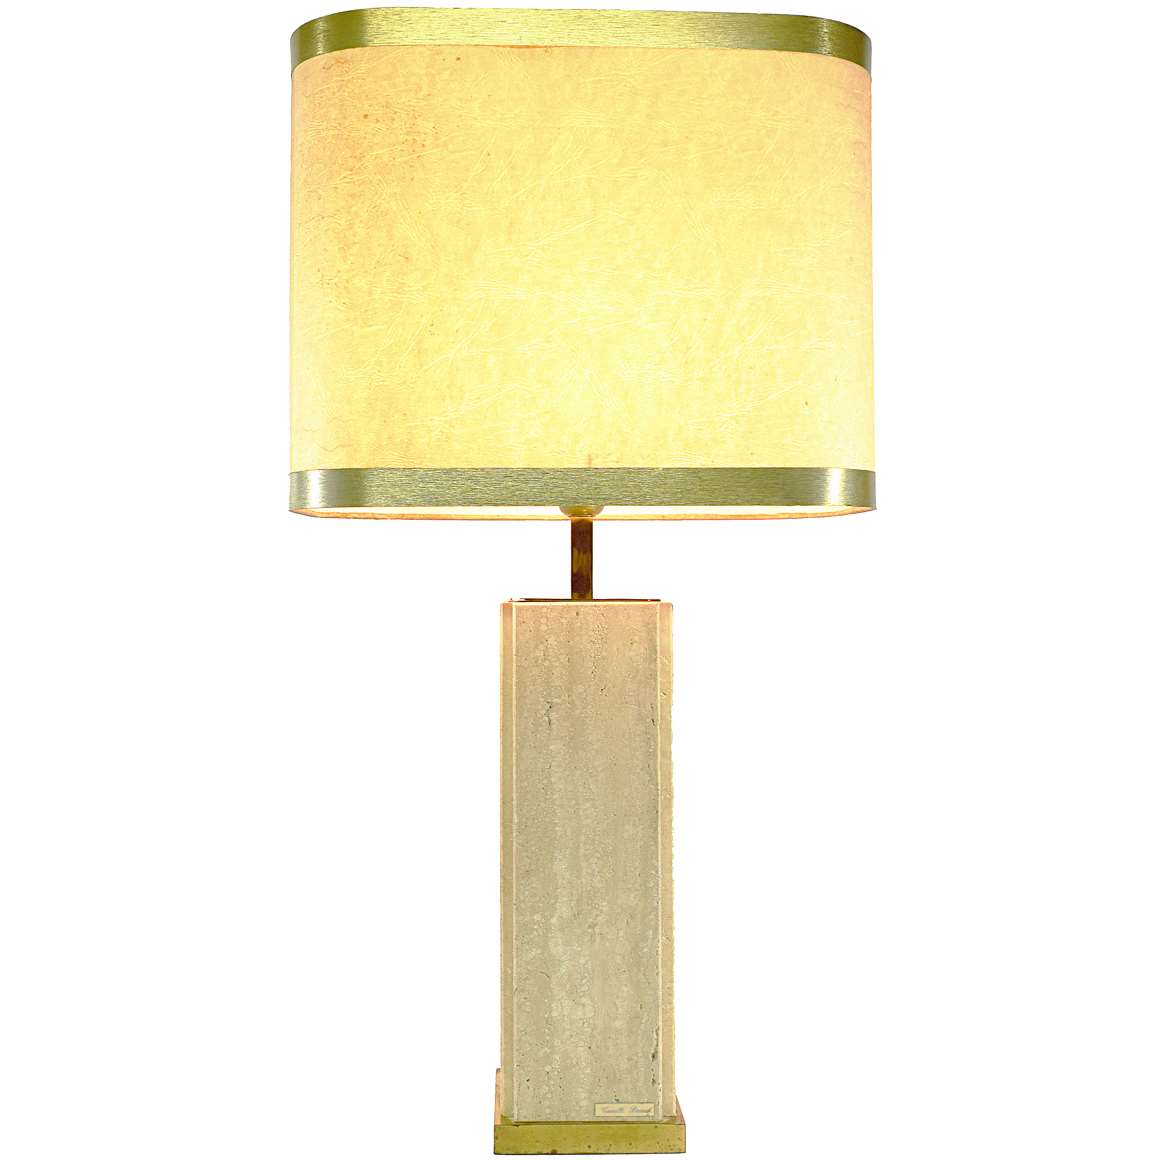 Camille Breesch Table Lamp